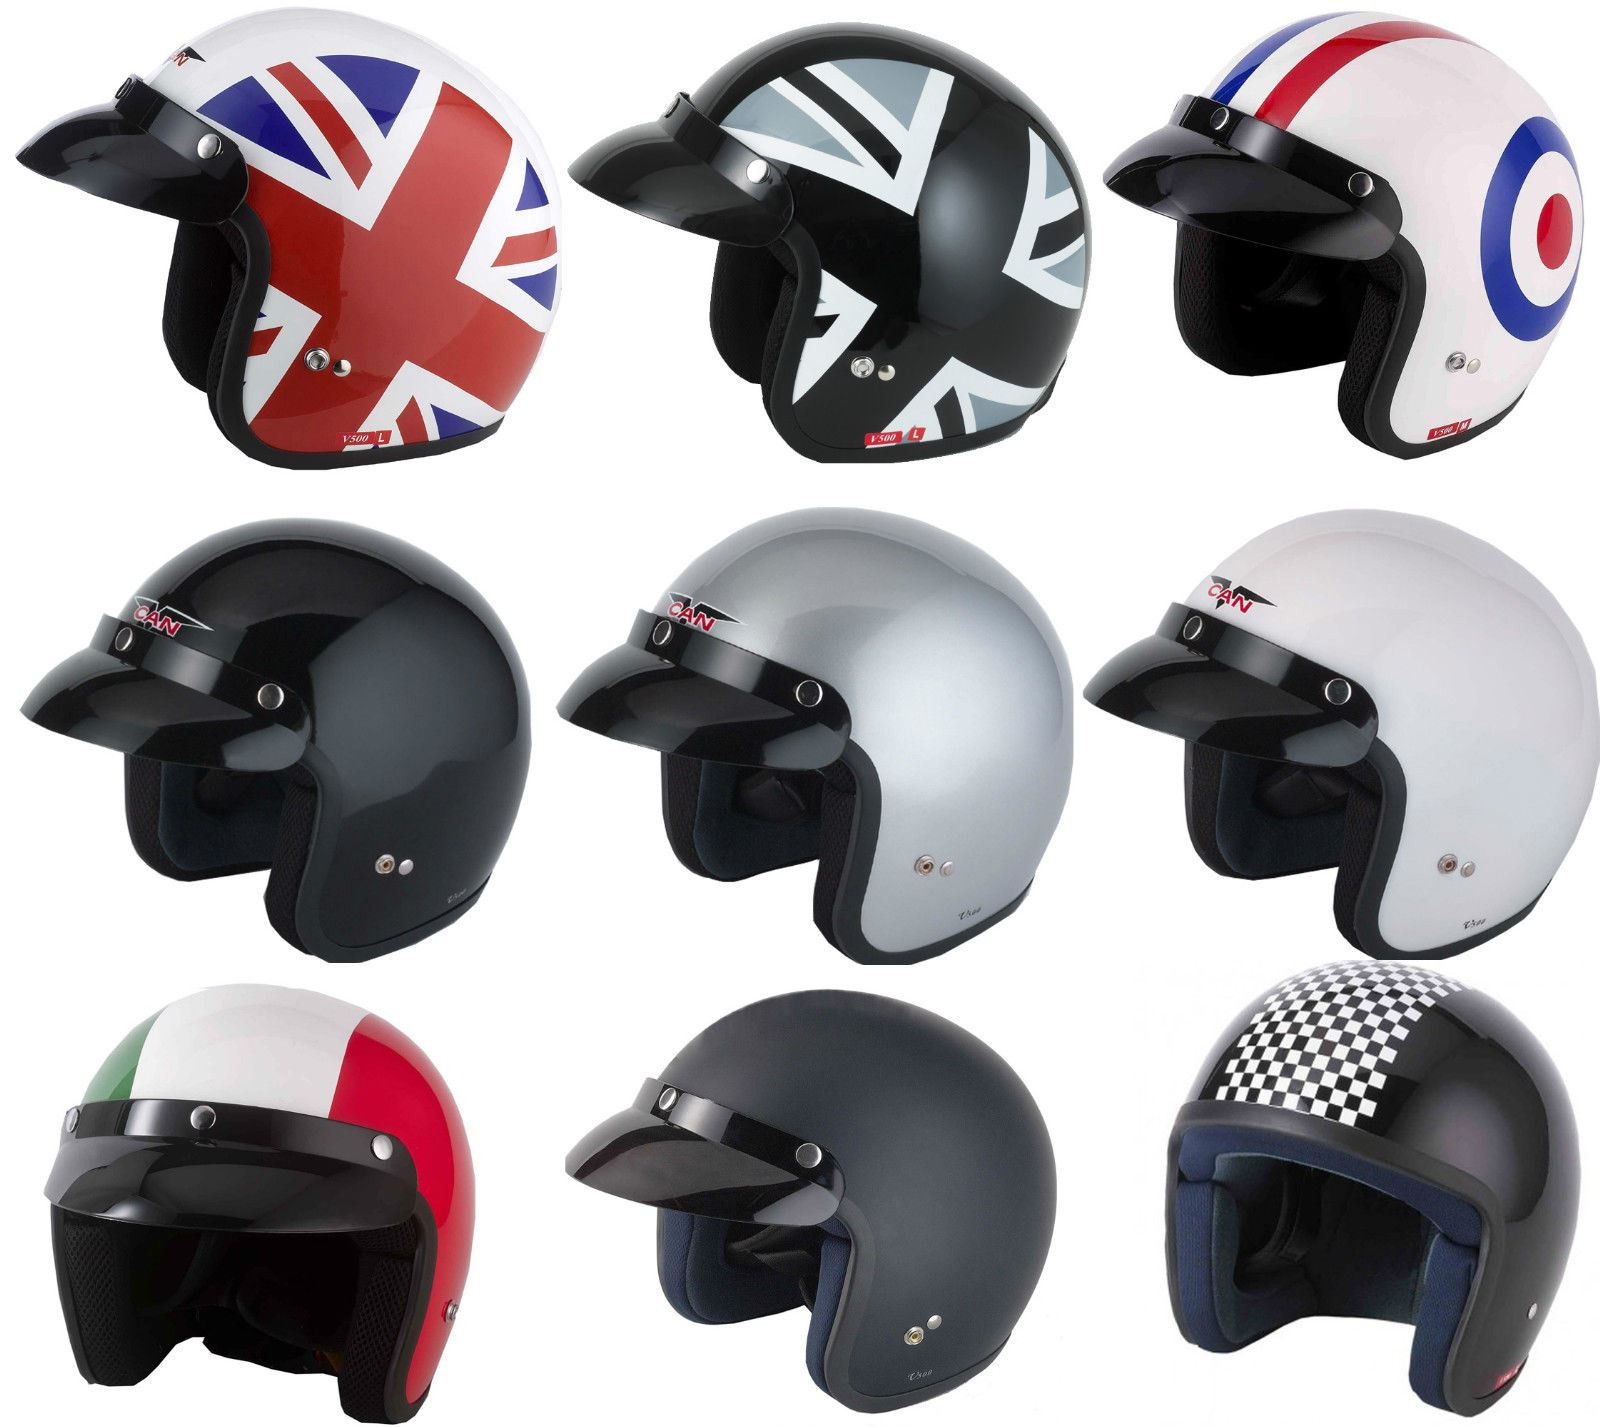 Vcan V500 Open Face Jet Classic Motorcycle Bike Scooter Urban Helmet Graphic Ebay